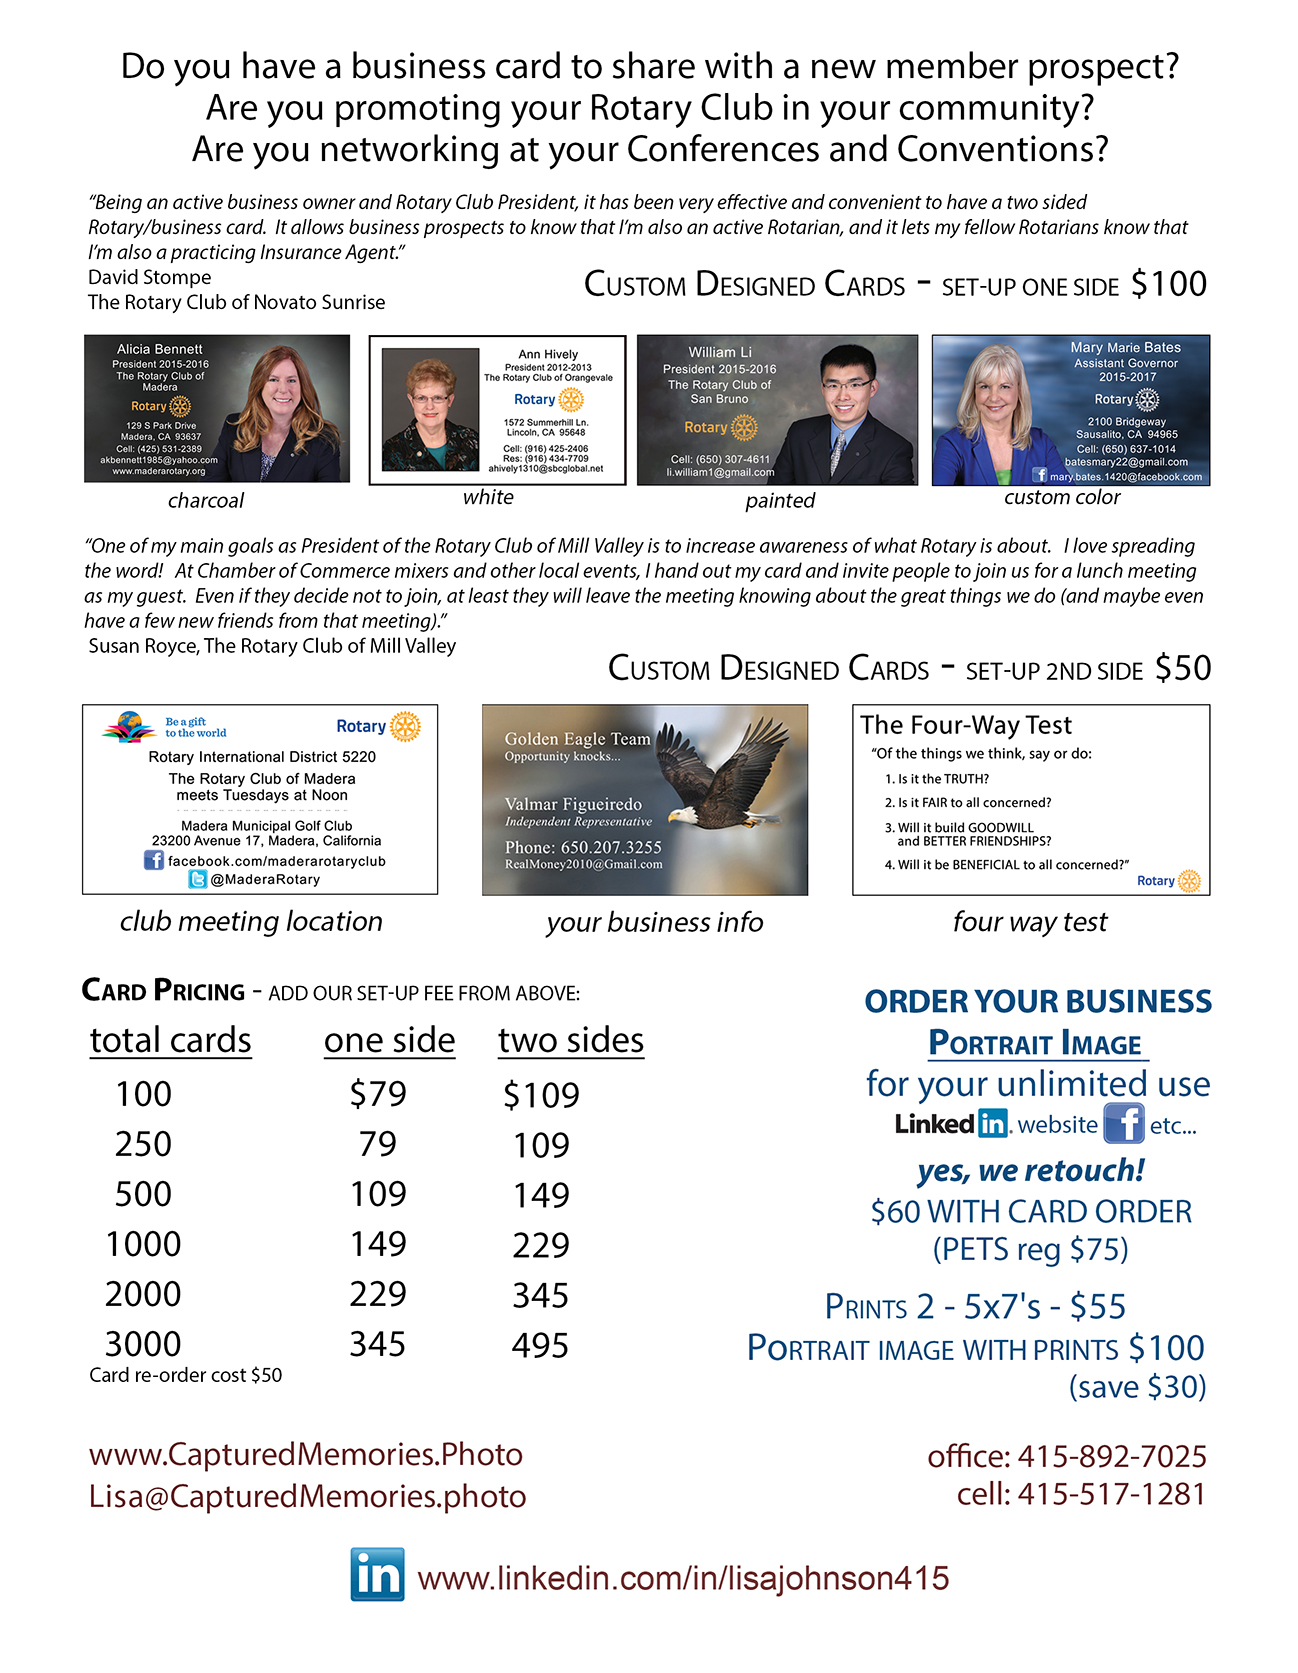 Order Rotary/Business Cards | Corporate and Business Headshots